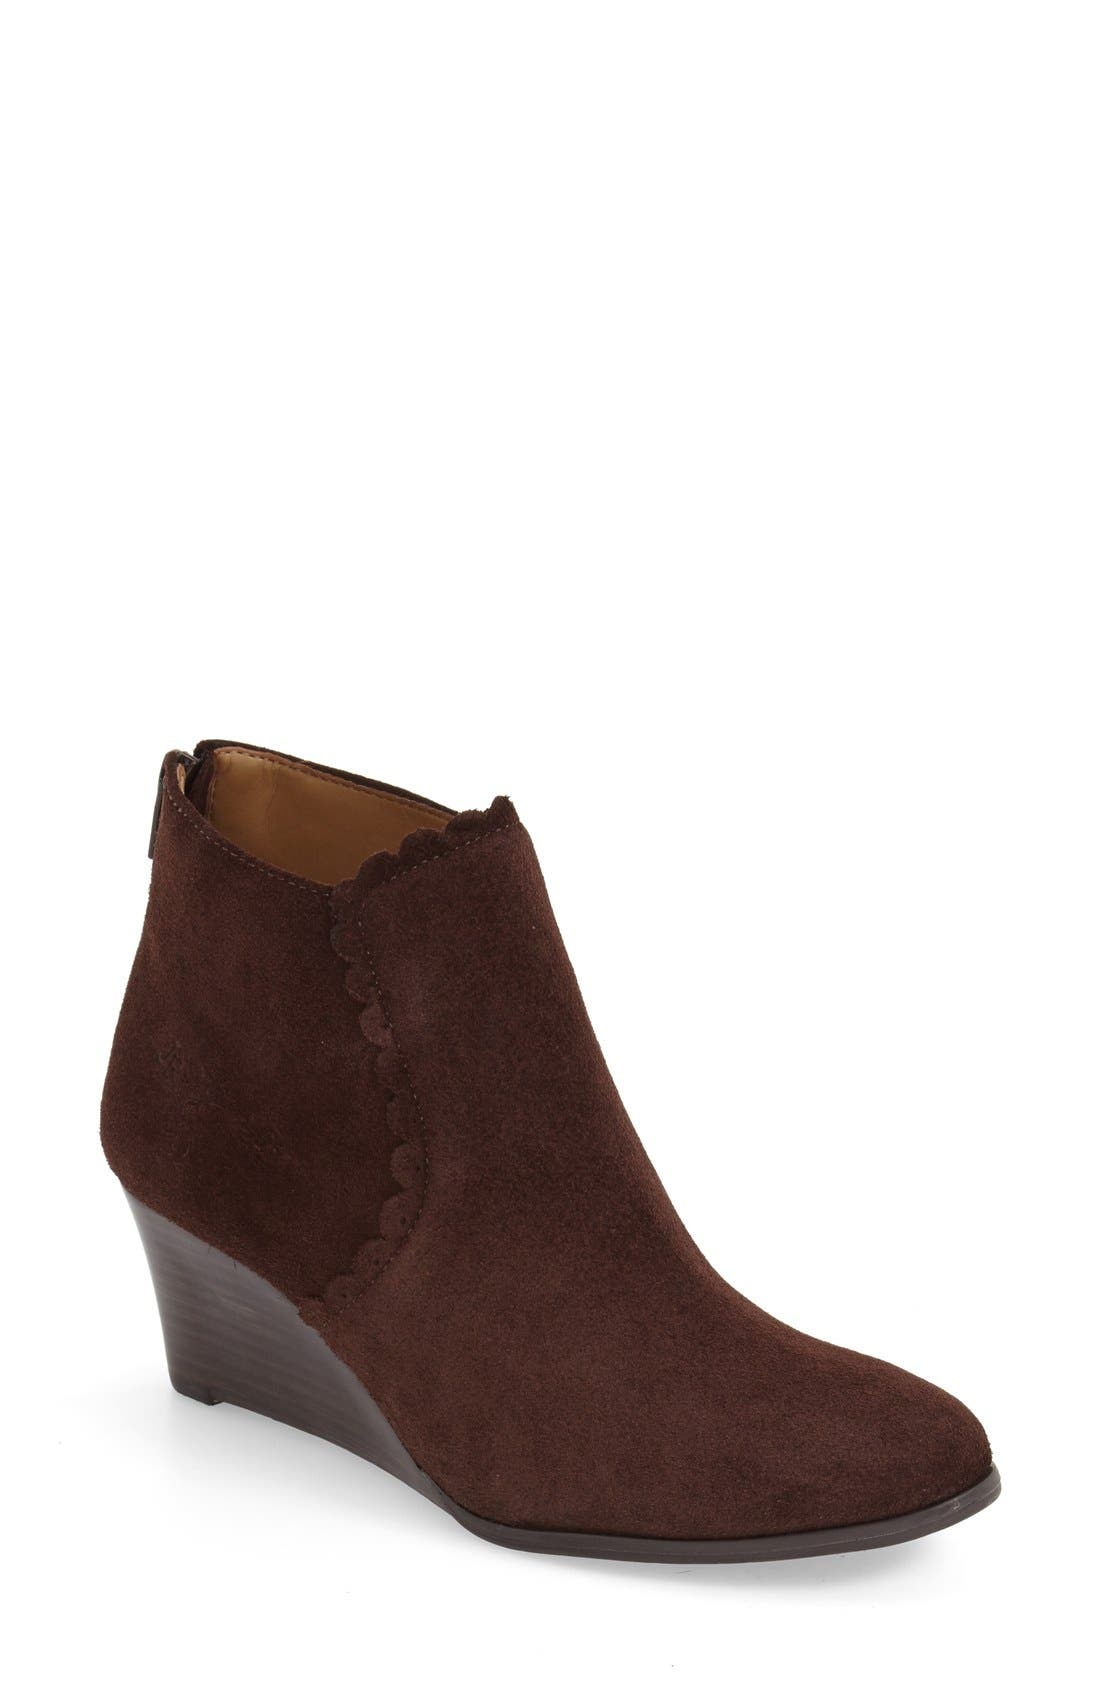 Main Image - Jack Rogers 'Emery' Wedge Bootie (Women)